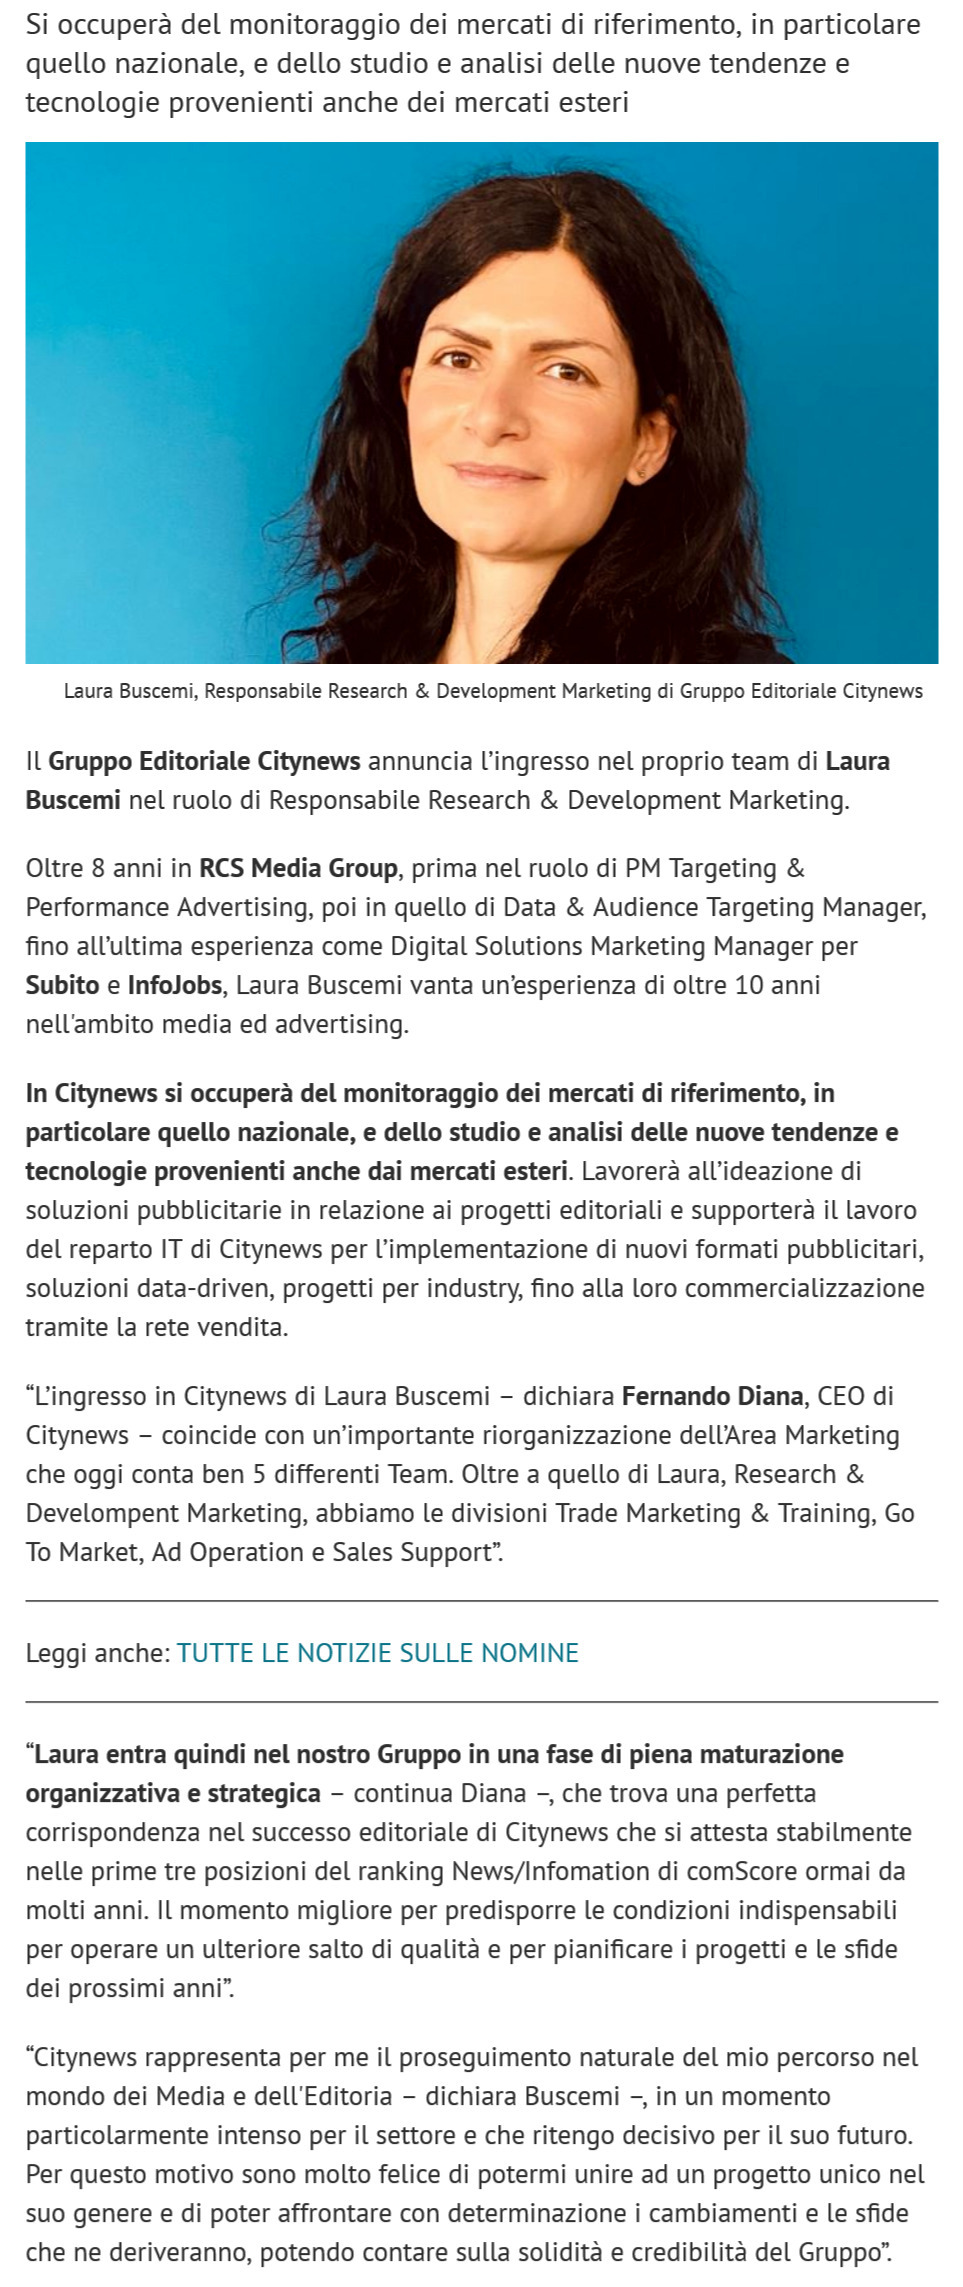 Citynews, Laura Buscemi è la nuova Responsabile Research & Development - Engage, 3 marzo 2021-2